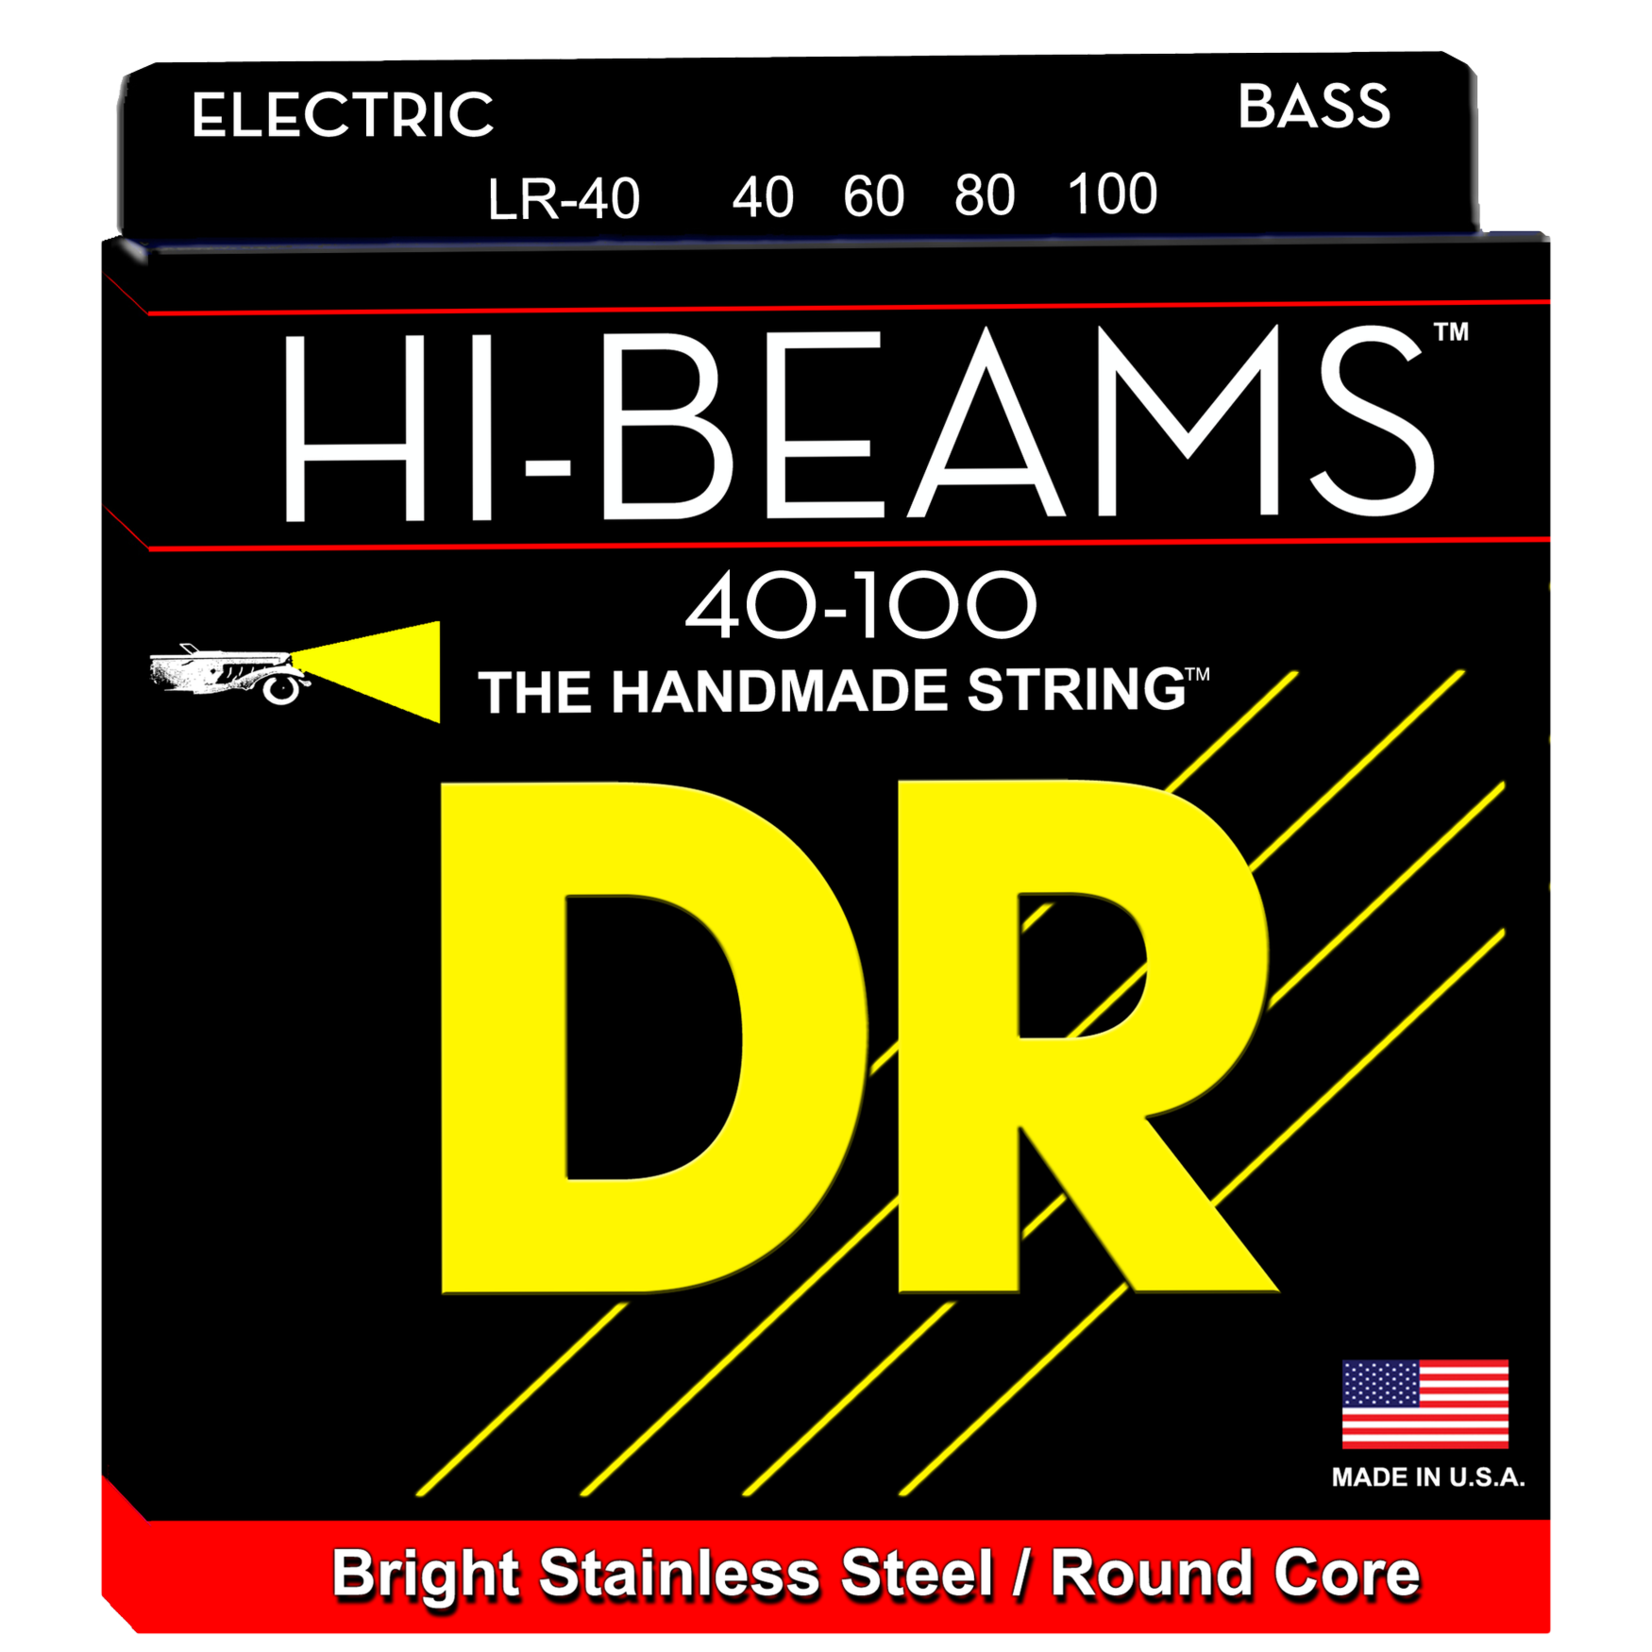 DR Strings DR Strings LR-40 Lite 4-String HI-BEAMS Stainless Steel (Round Core) Bass Strings